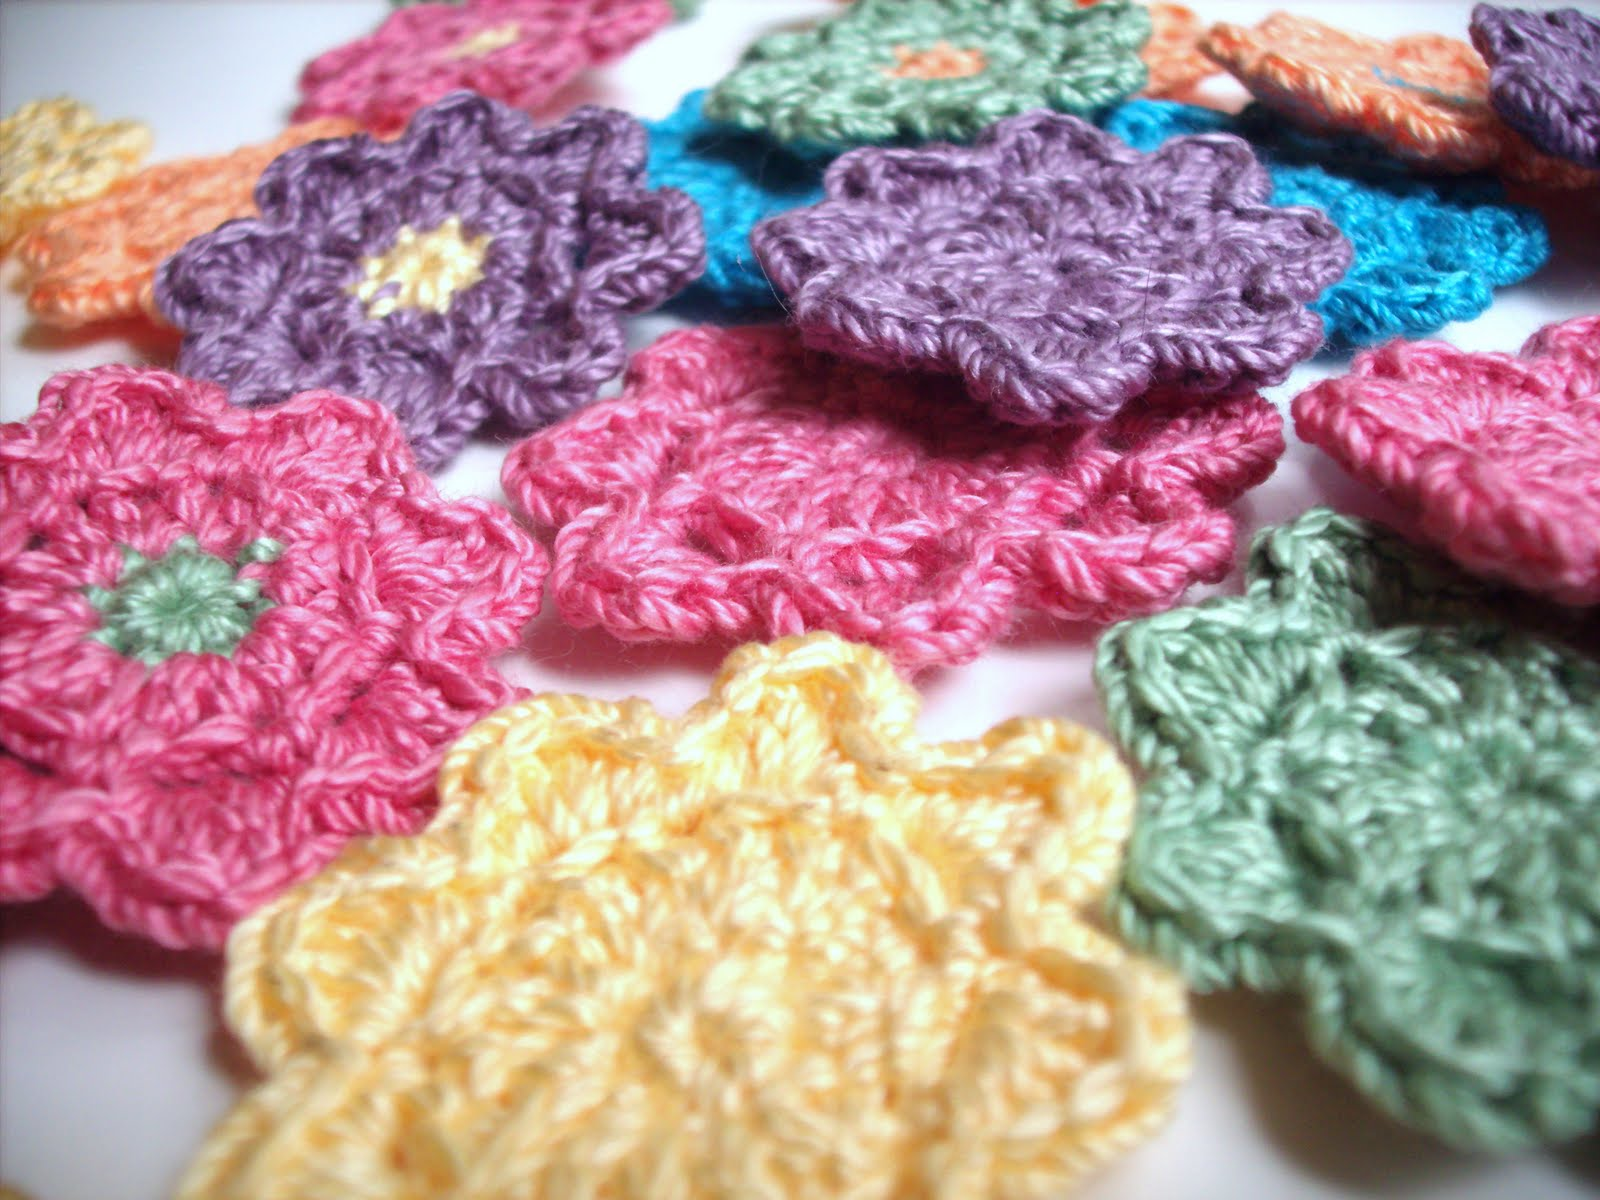 Crochet Patterns Using Thread : CROCHET FLOWER PATTERNS USING THREAD - Crochet Club